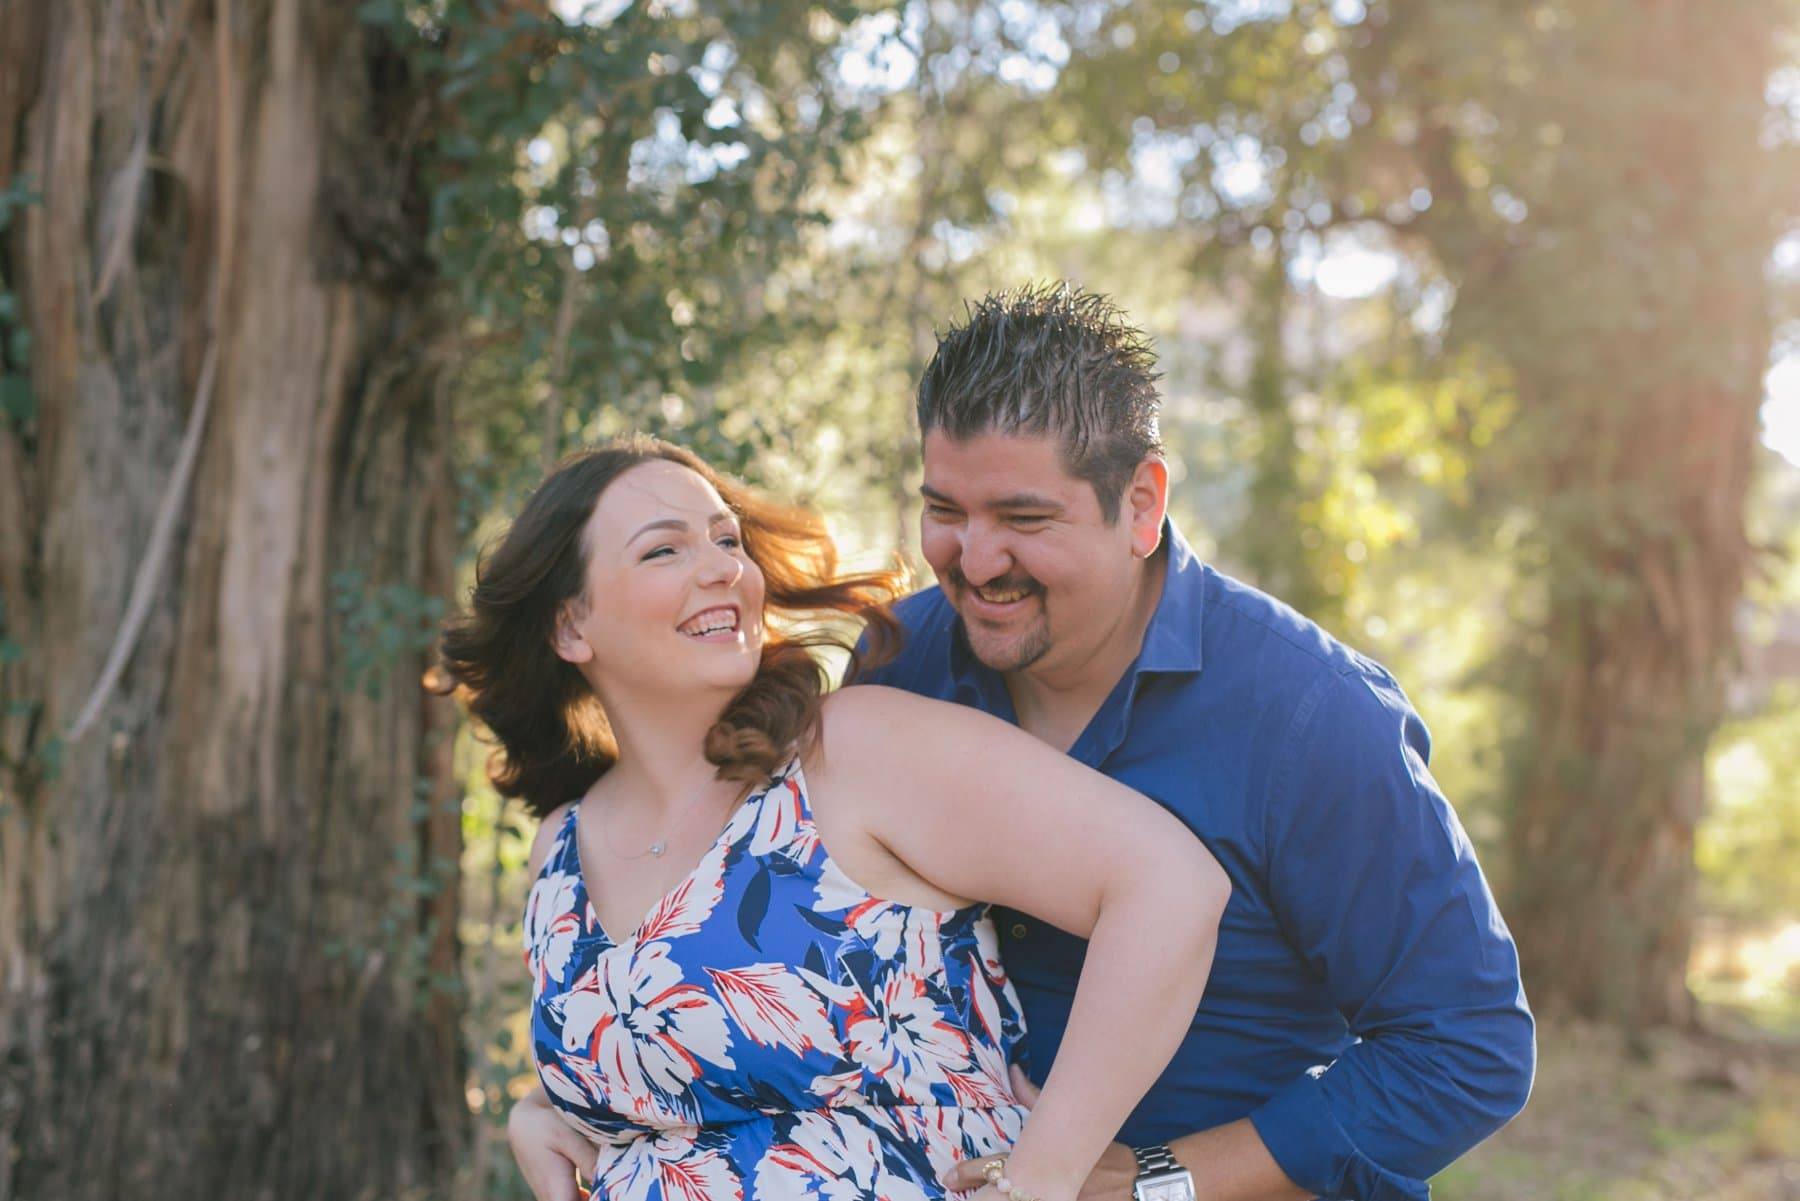 couple laughing and having fun at engagement session candid natural engagement photographer Arizona